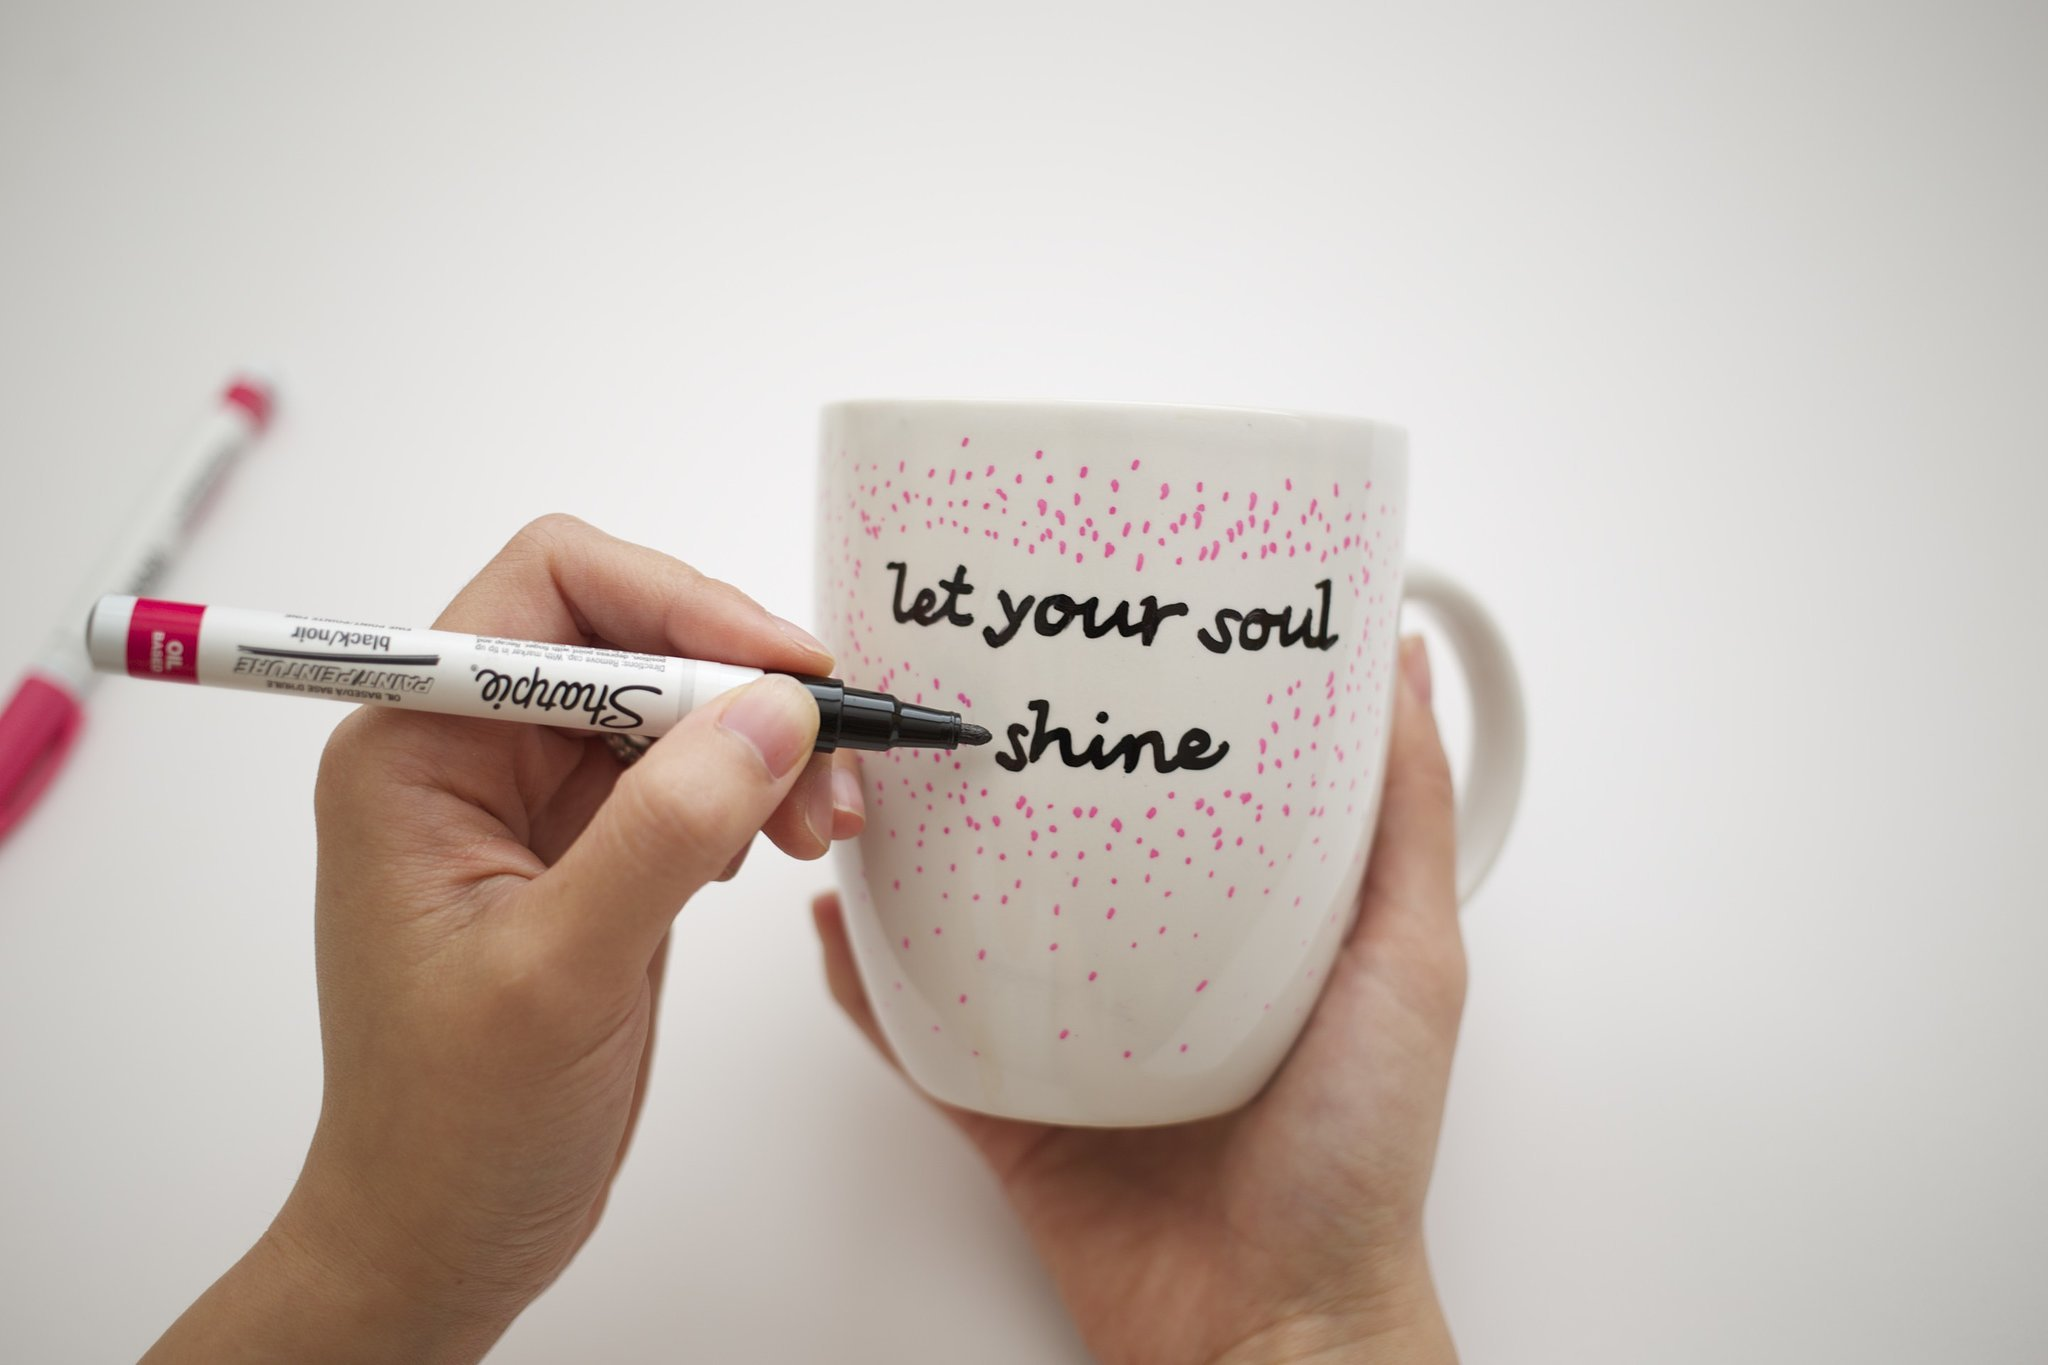 Diy quote stenciled sharpie mugs popsugar smart living step 6 solutioingenieria Image collections